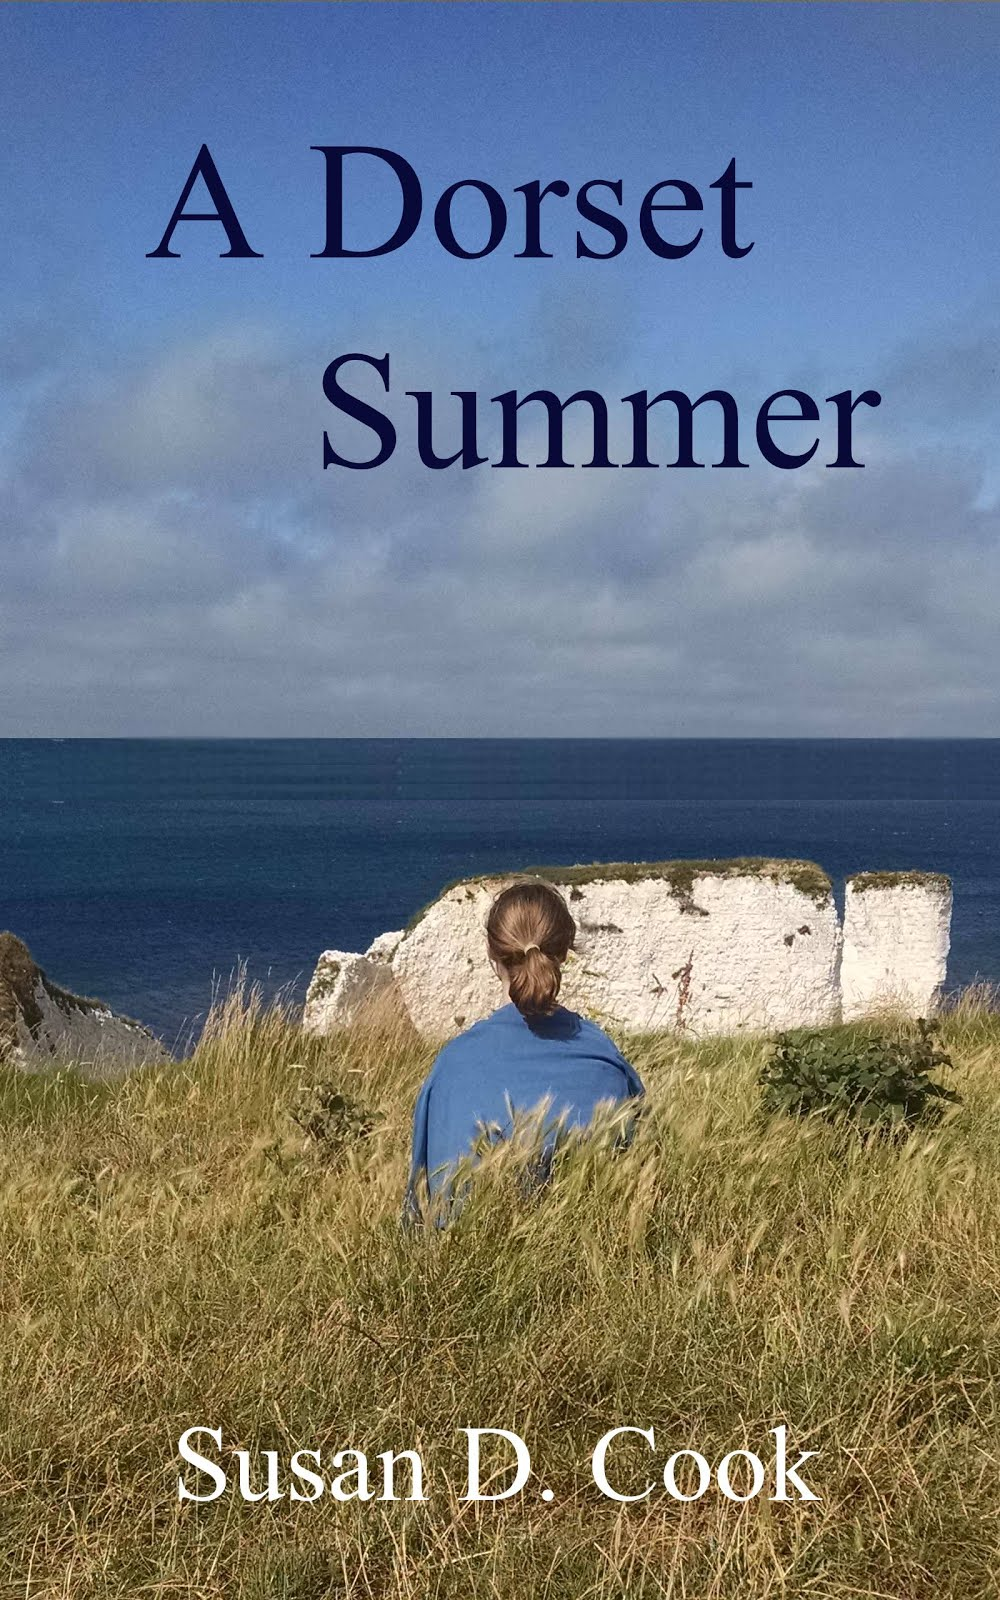 A Dorset Summer is available - click the cover for more details!